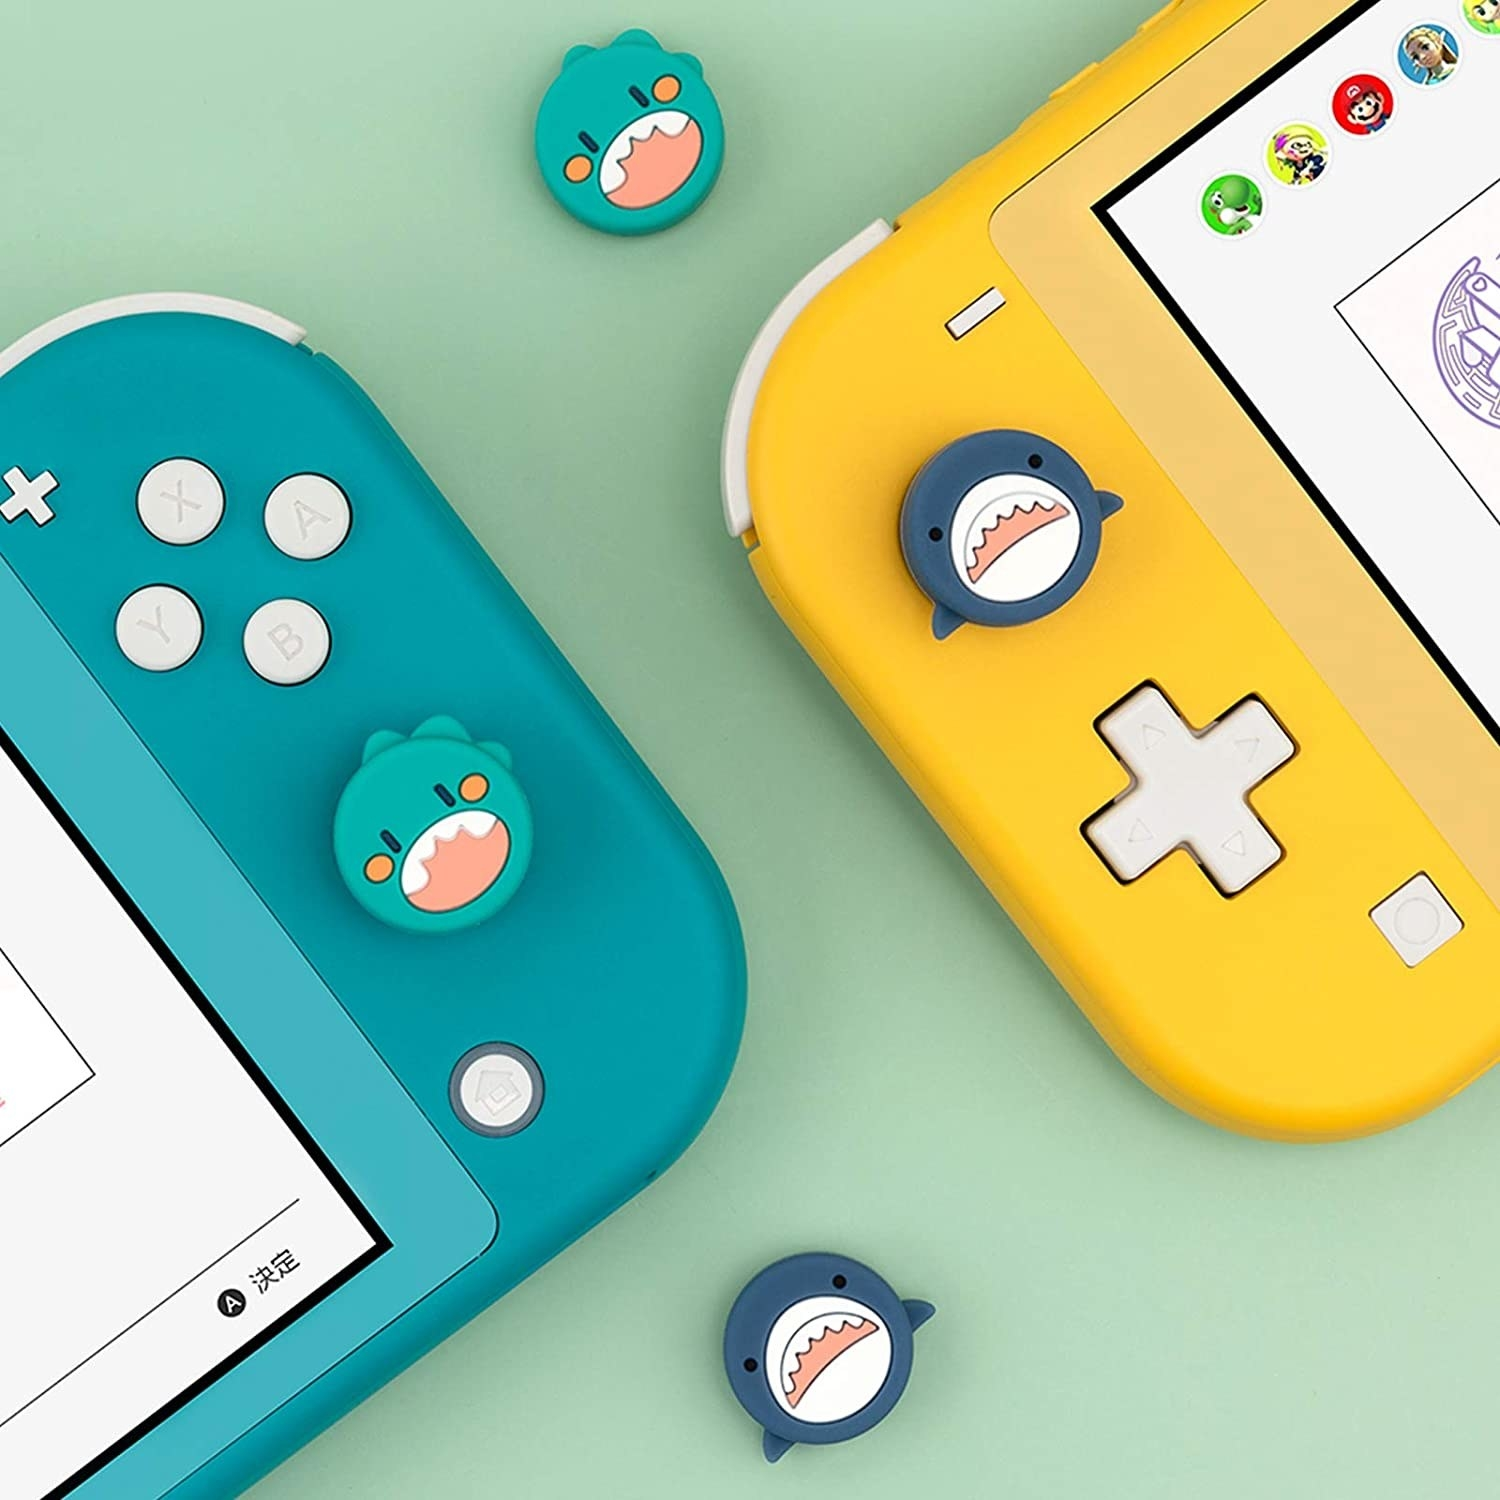 The thumb grips attached to switches